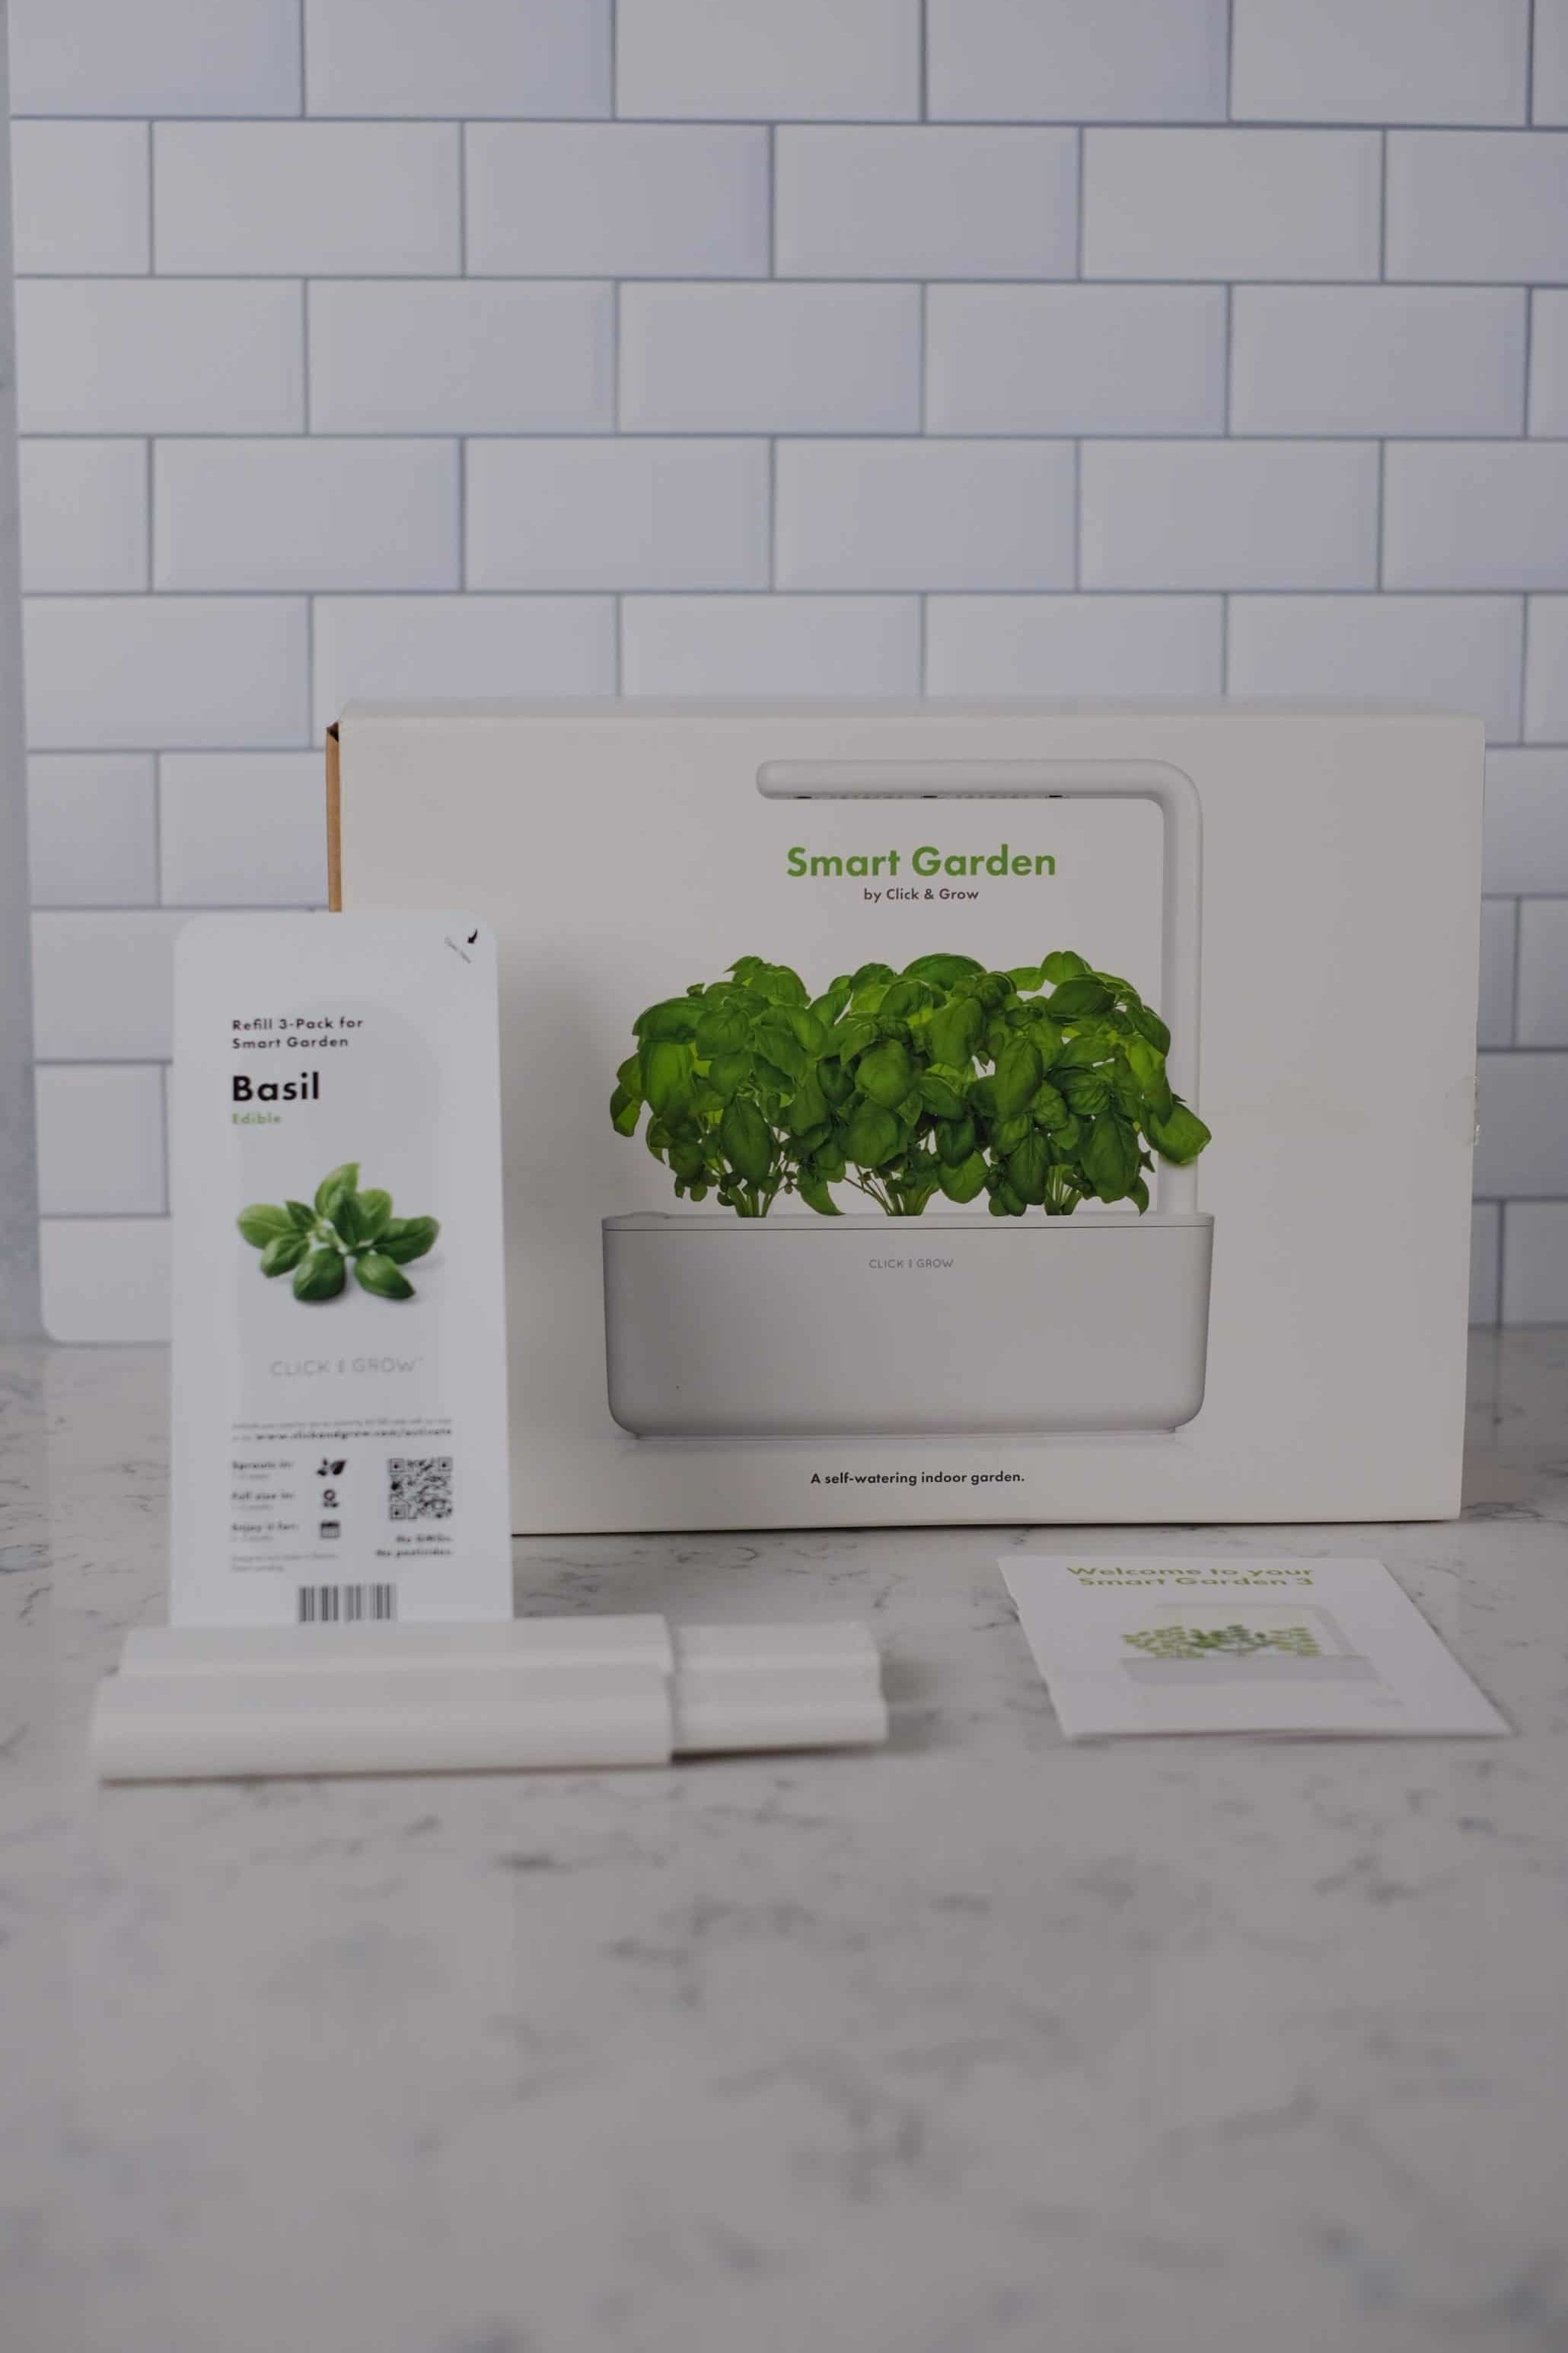 smart garden box on countertop